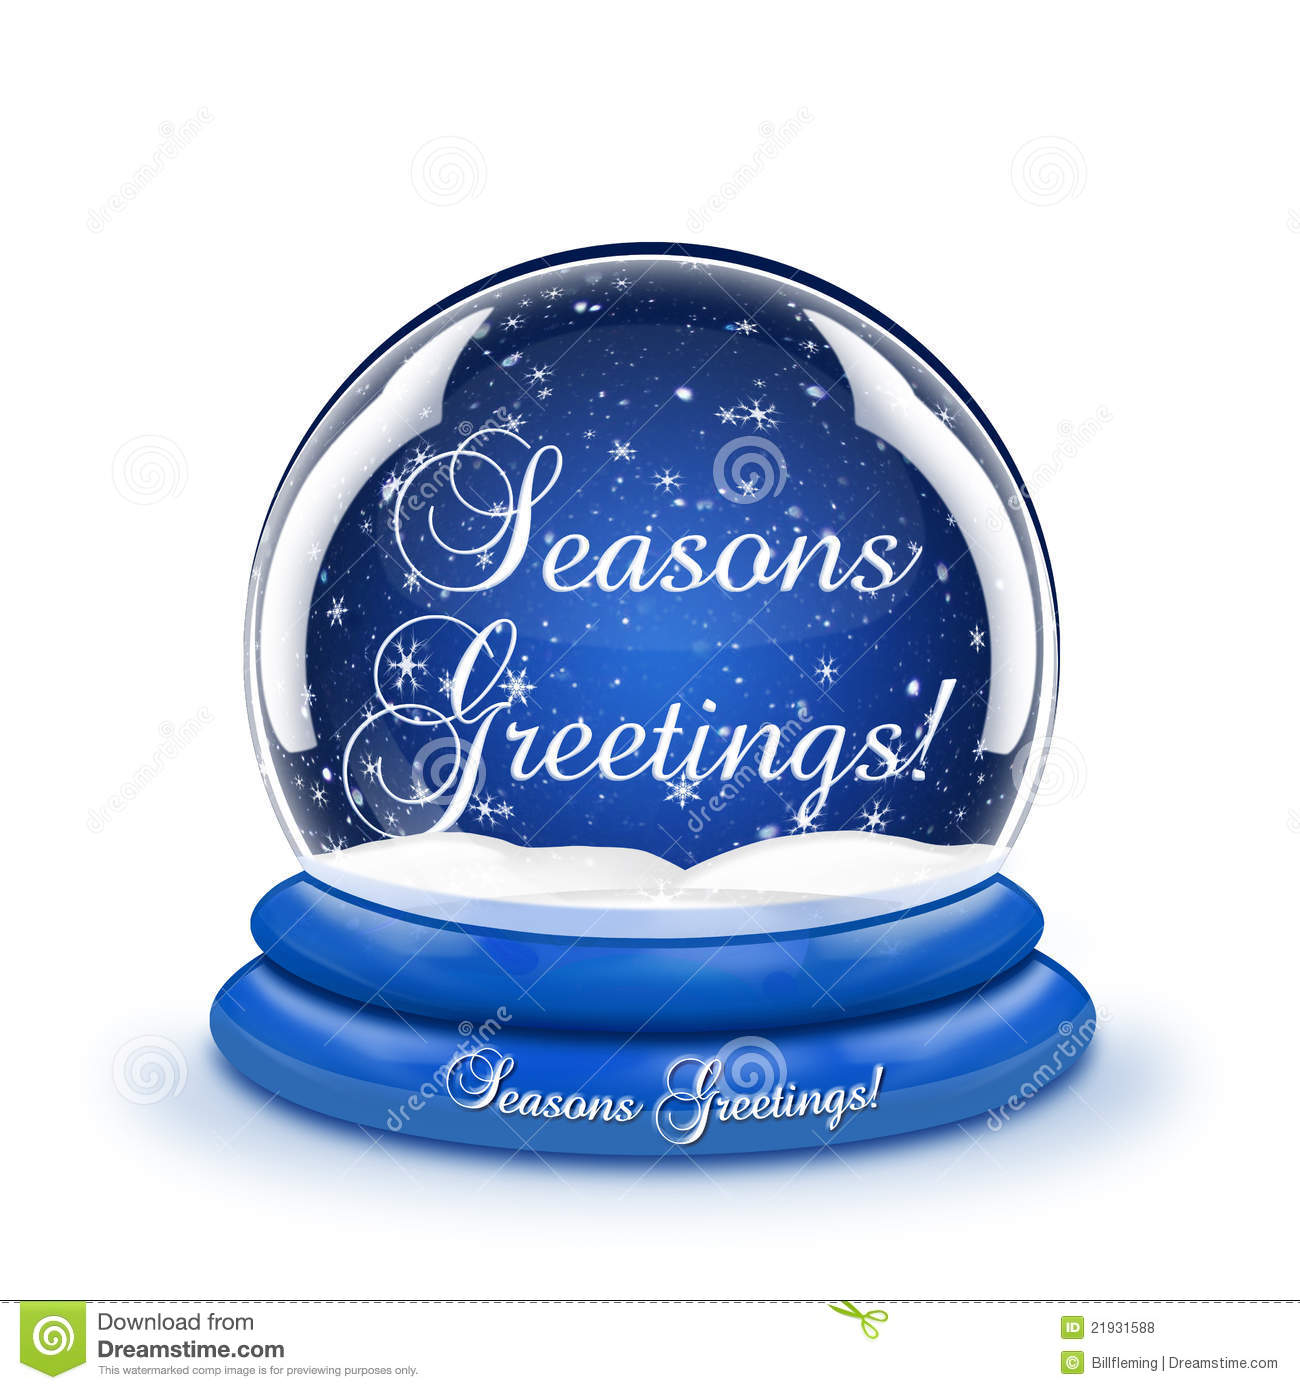 Seasons greetings snow globe stock illustration illustration of seasons greetings snow globe kristyandbryce Image collections